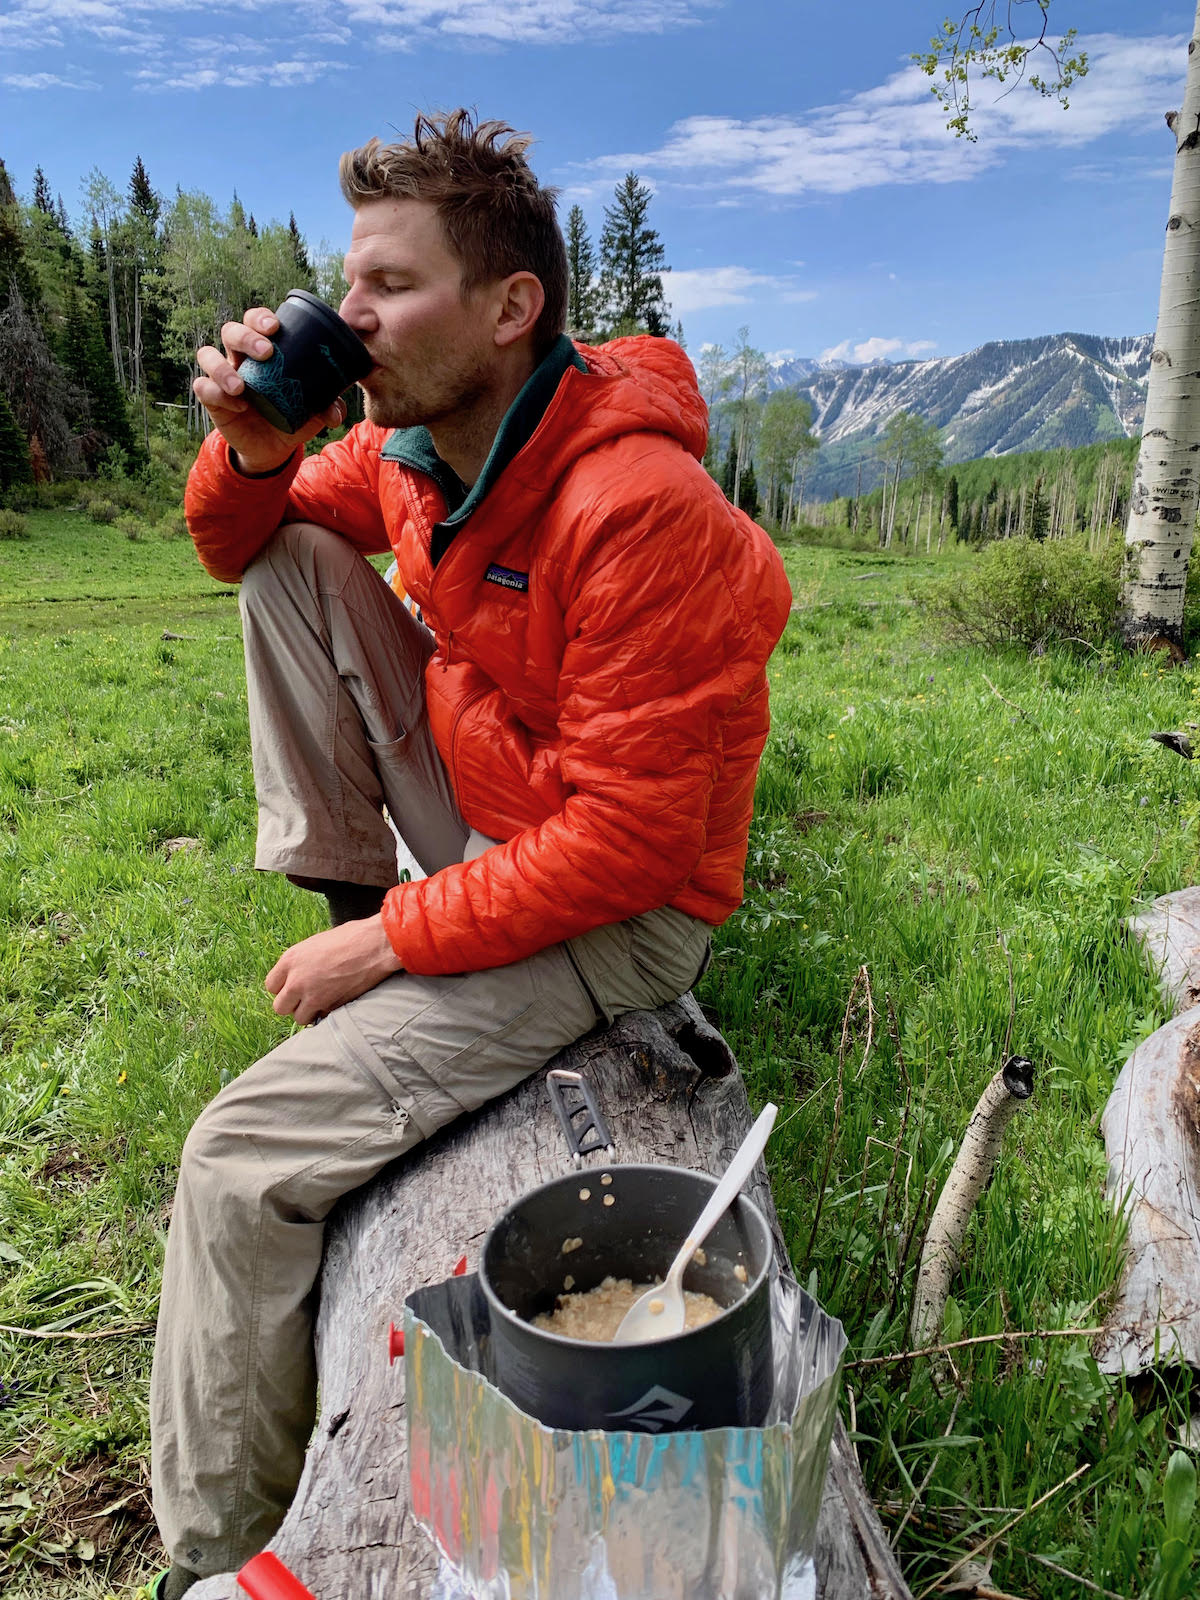 Derek Franz enjoying coffee and oatmeal made with the Sea to Summit Alpha Pot Cookset during a backpack trip in western Colorado last June. [Photo] Mandi Franz